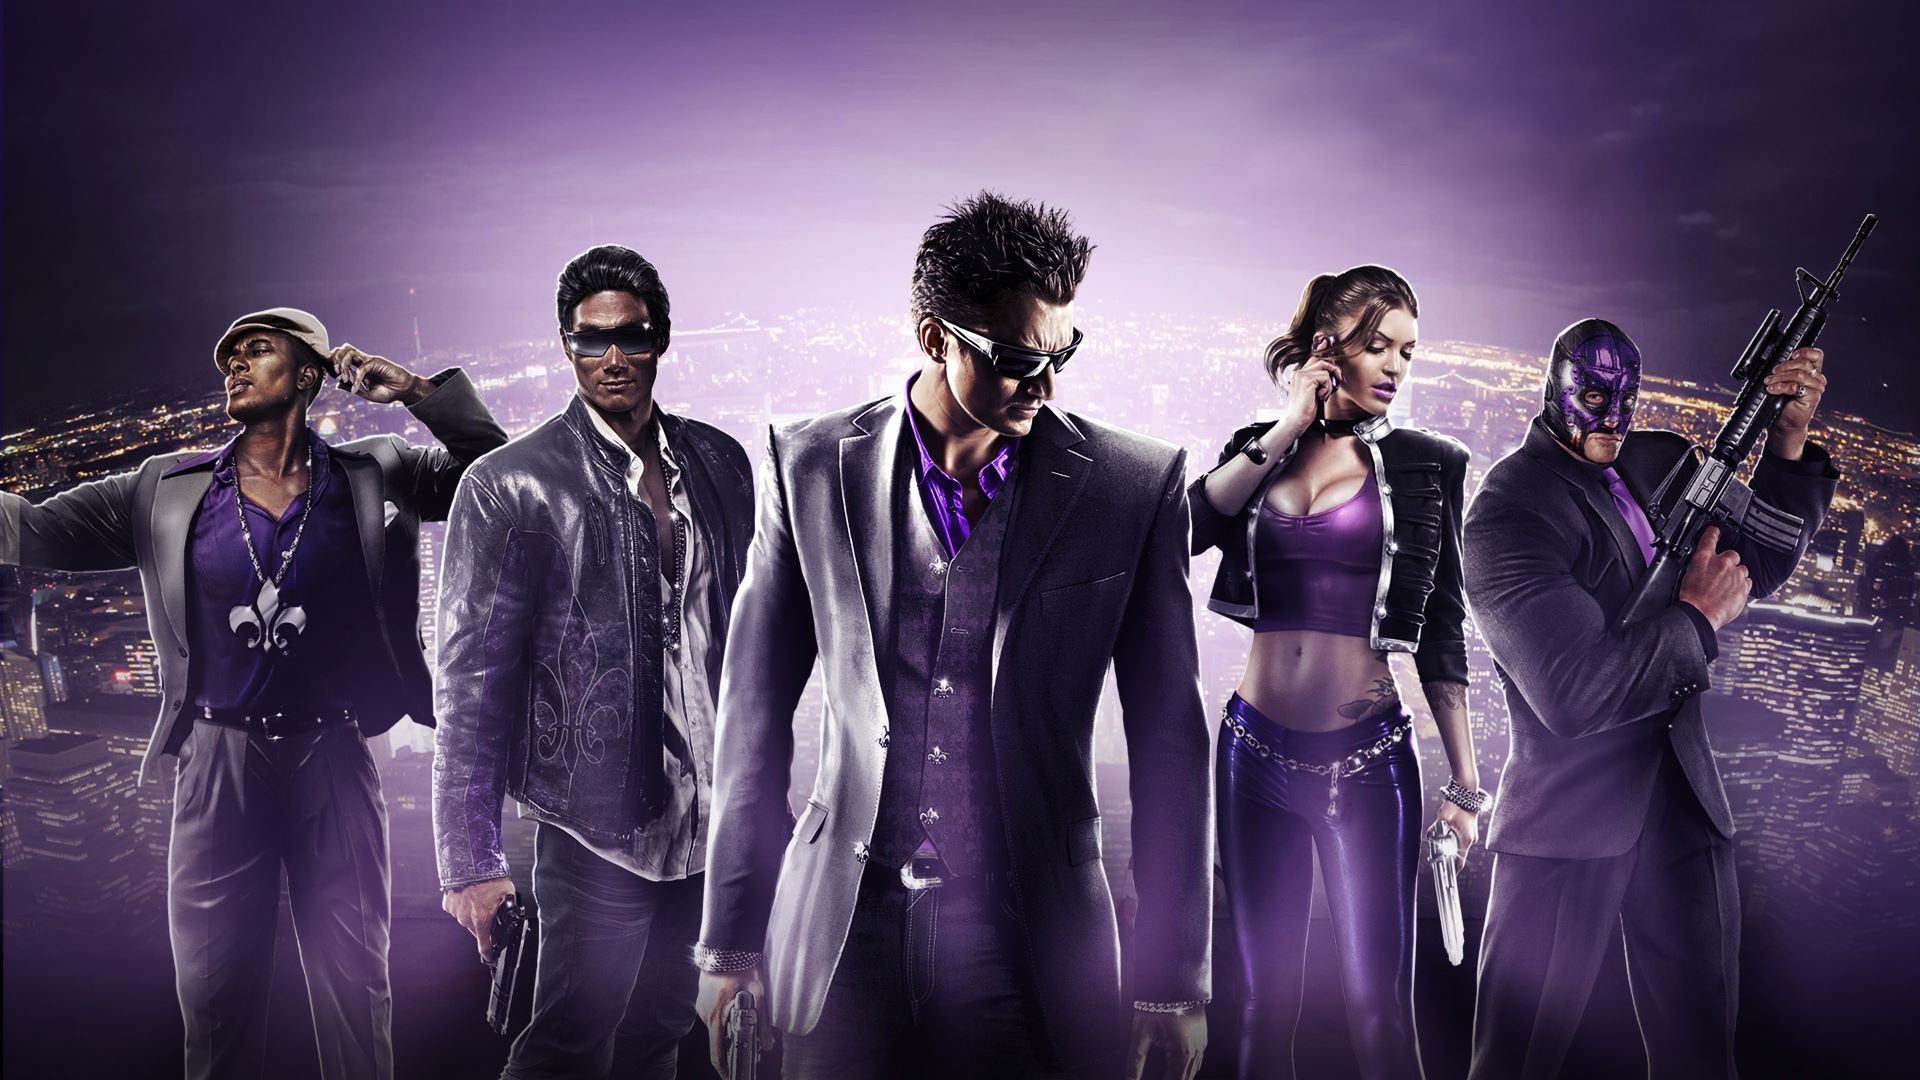 Saints Row the Third on Switch: A Portable Success or